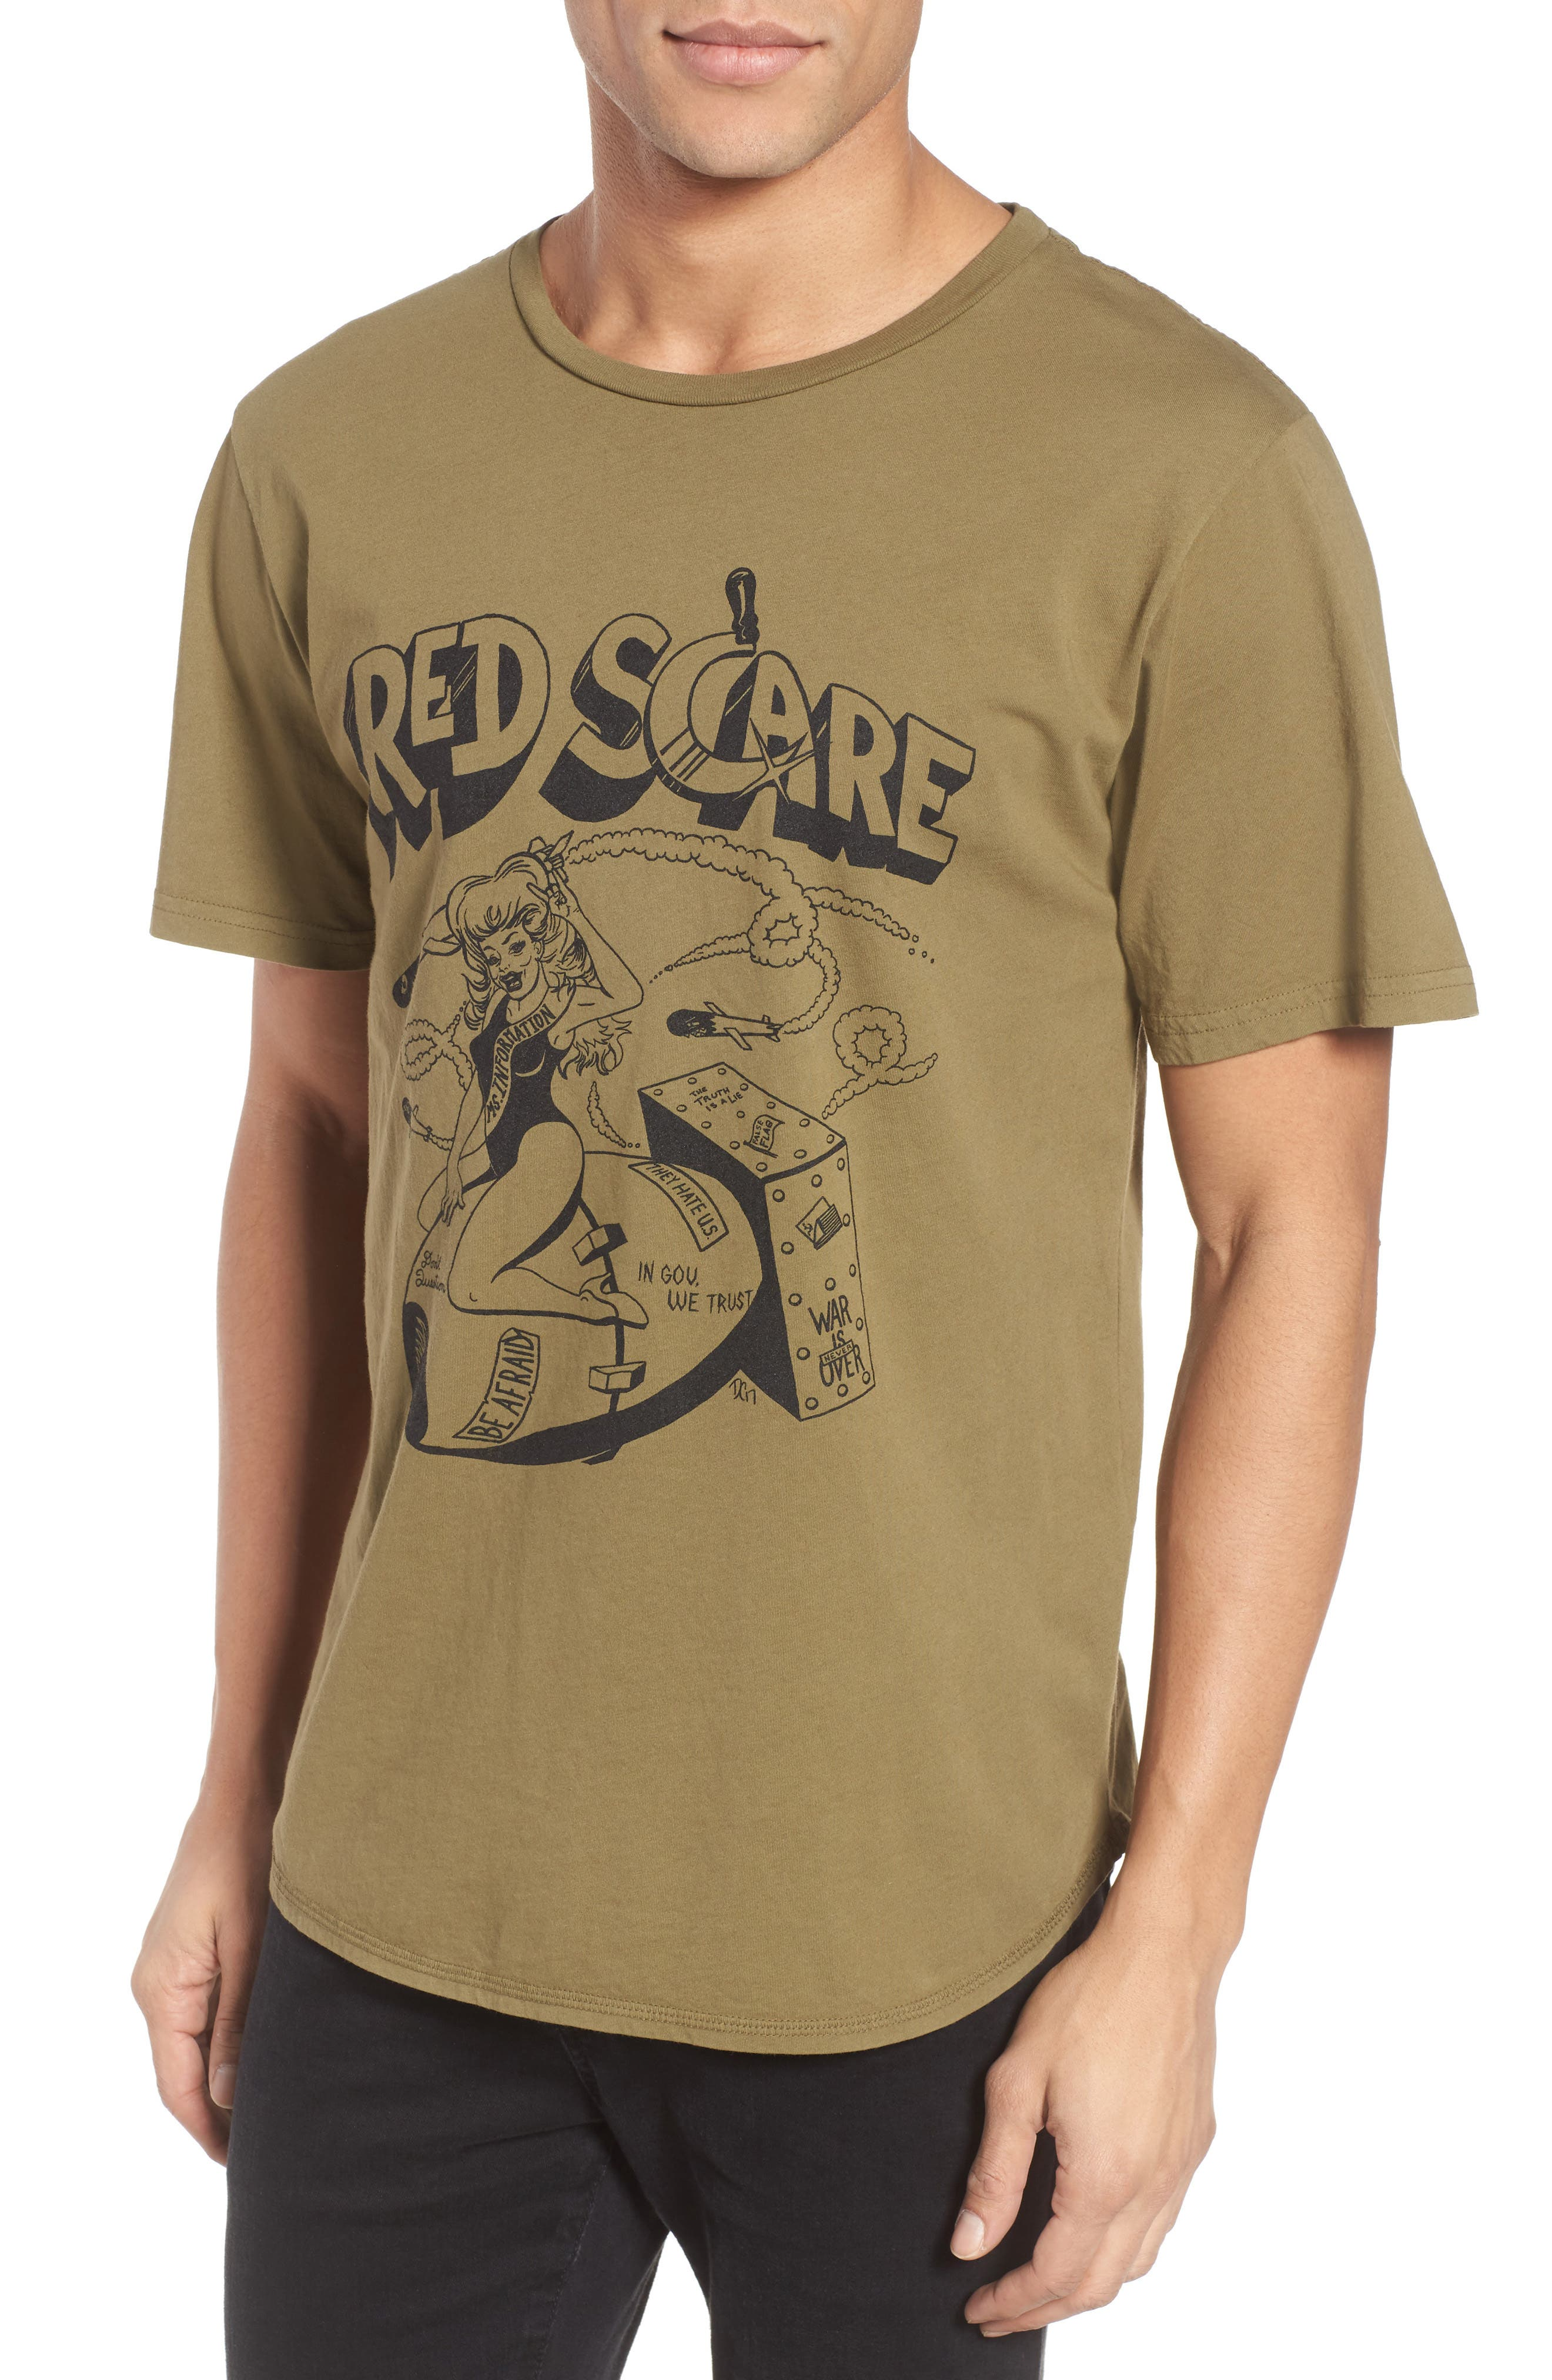 Red Scare Graphic T-Shirt,                         Main,                         color, Infantry Green